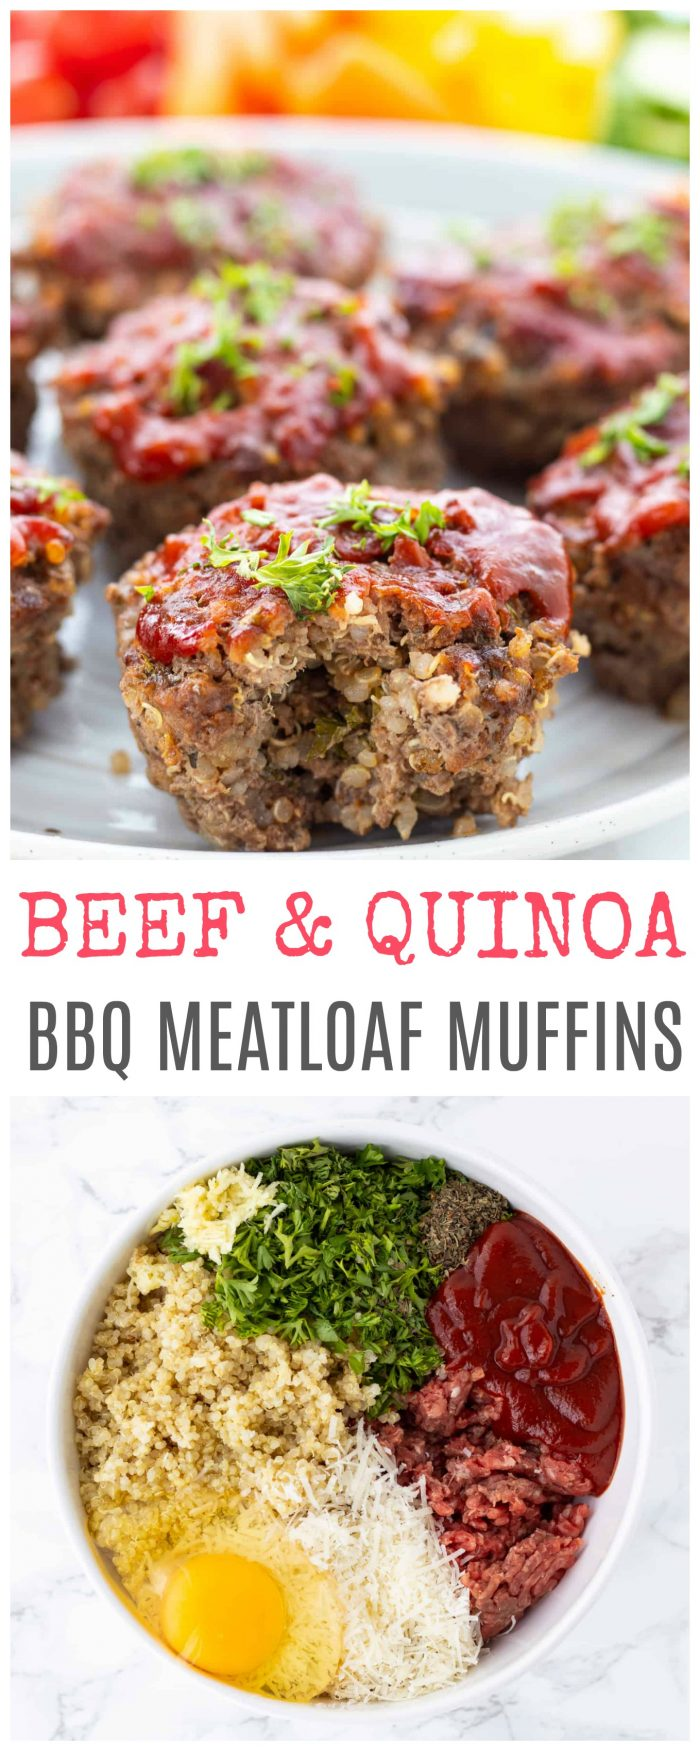 These BBQ meatloaf muffins are made with beef and quinoa for a hearty, filling and protein packed dinner. Simple to prepare, they make for a great main dish or lunch and can also be made ahead of time for freezer-friendly meals. Made without breadcrumbs and gluten-free.